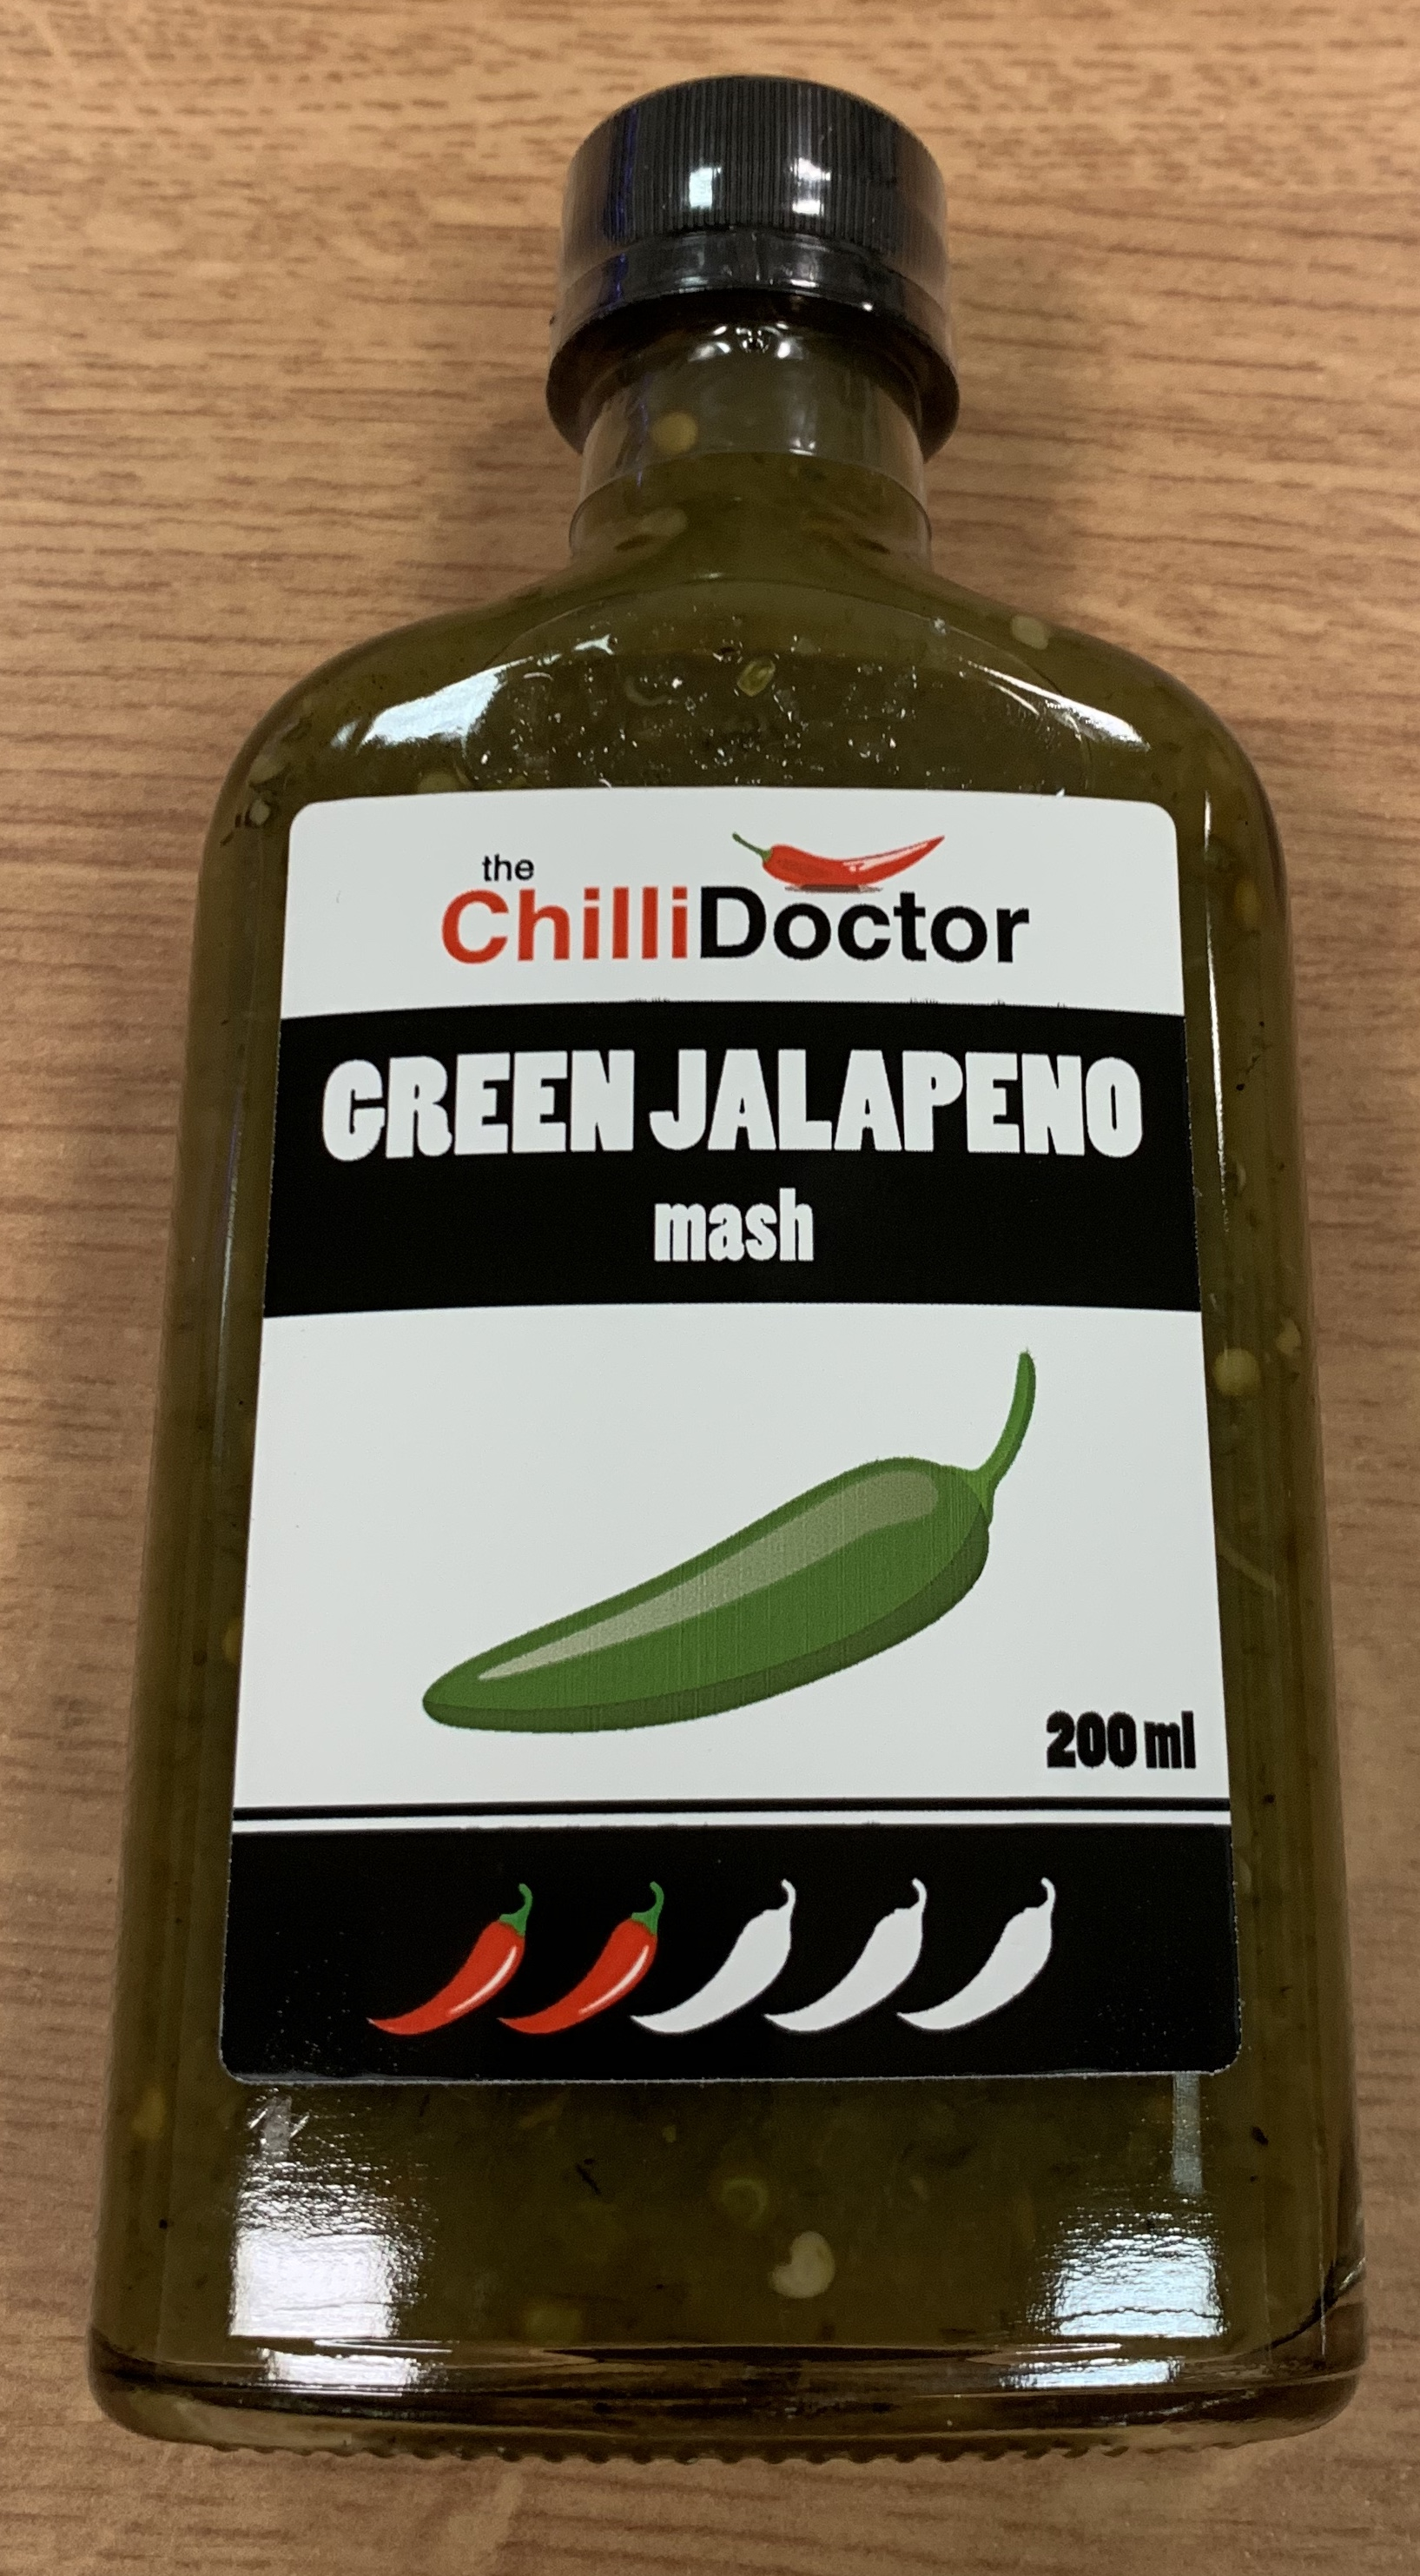 Green Jalapeño mash 200 ml